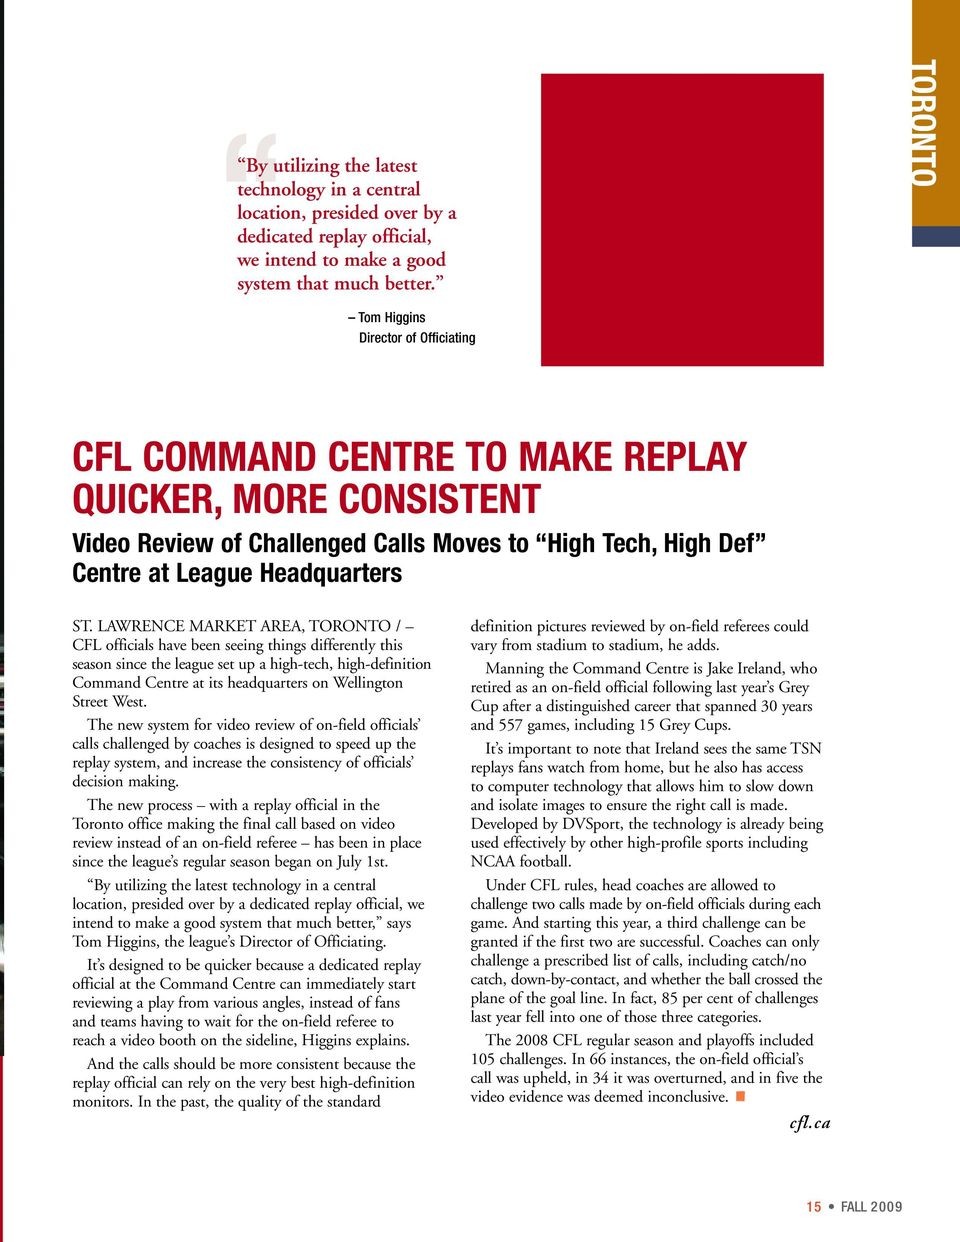 LAWRENCE MARKET AREA, TORONTO / CFL officials have been seeing things differently this season since the league set up a high-tech, high-definition Command Centre at its headquarters on Wellington